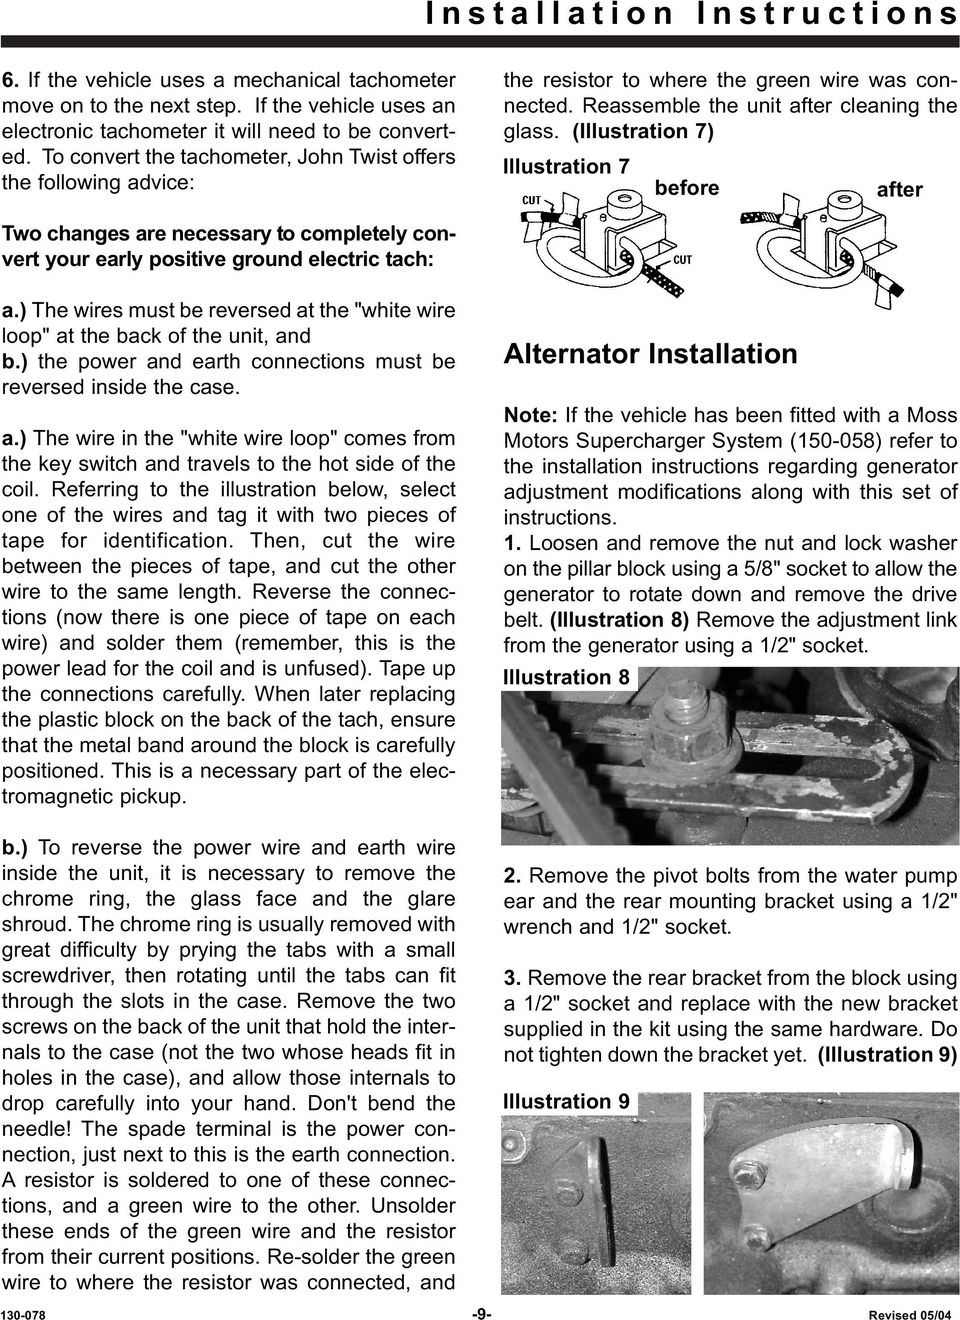 Mga Alternator Conversion Pdf Wiring Harness Front Mk 3 Mini Cooper With Illustration 7 Before After Two Changes Are Necessary To Completely Convert Your